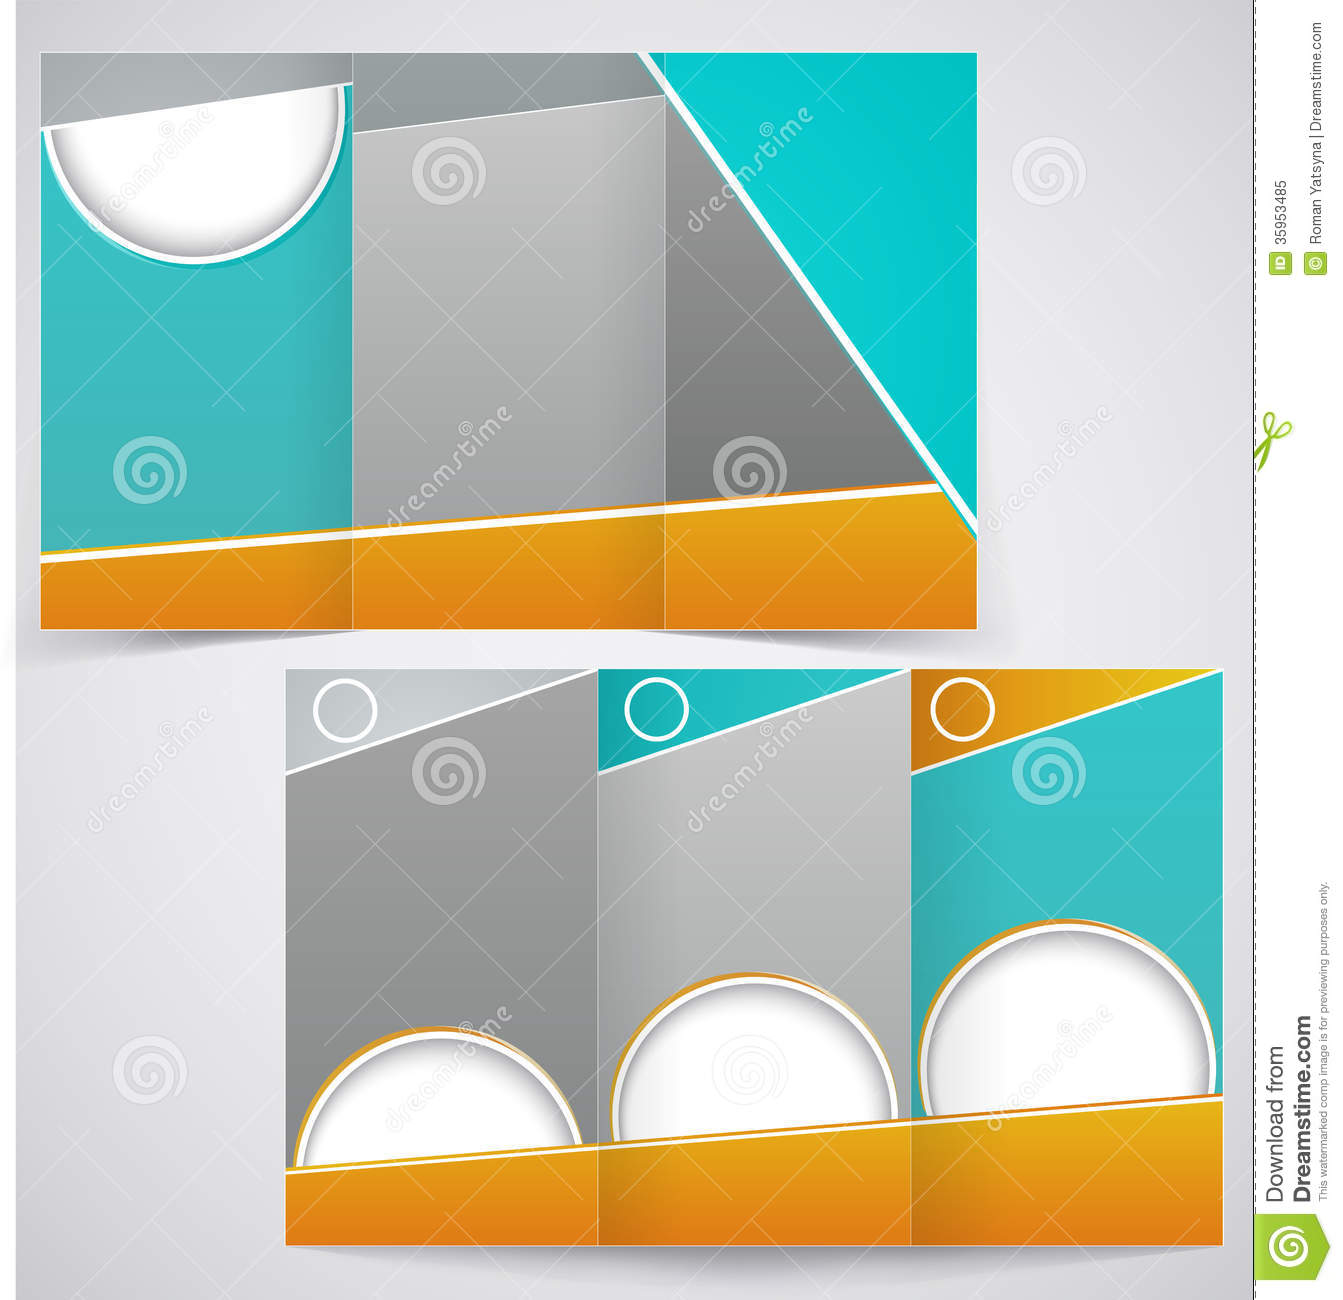 3 folded brochure template - vector brochure layout design with green and yello stock